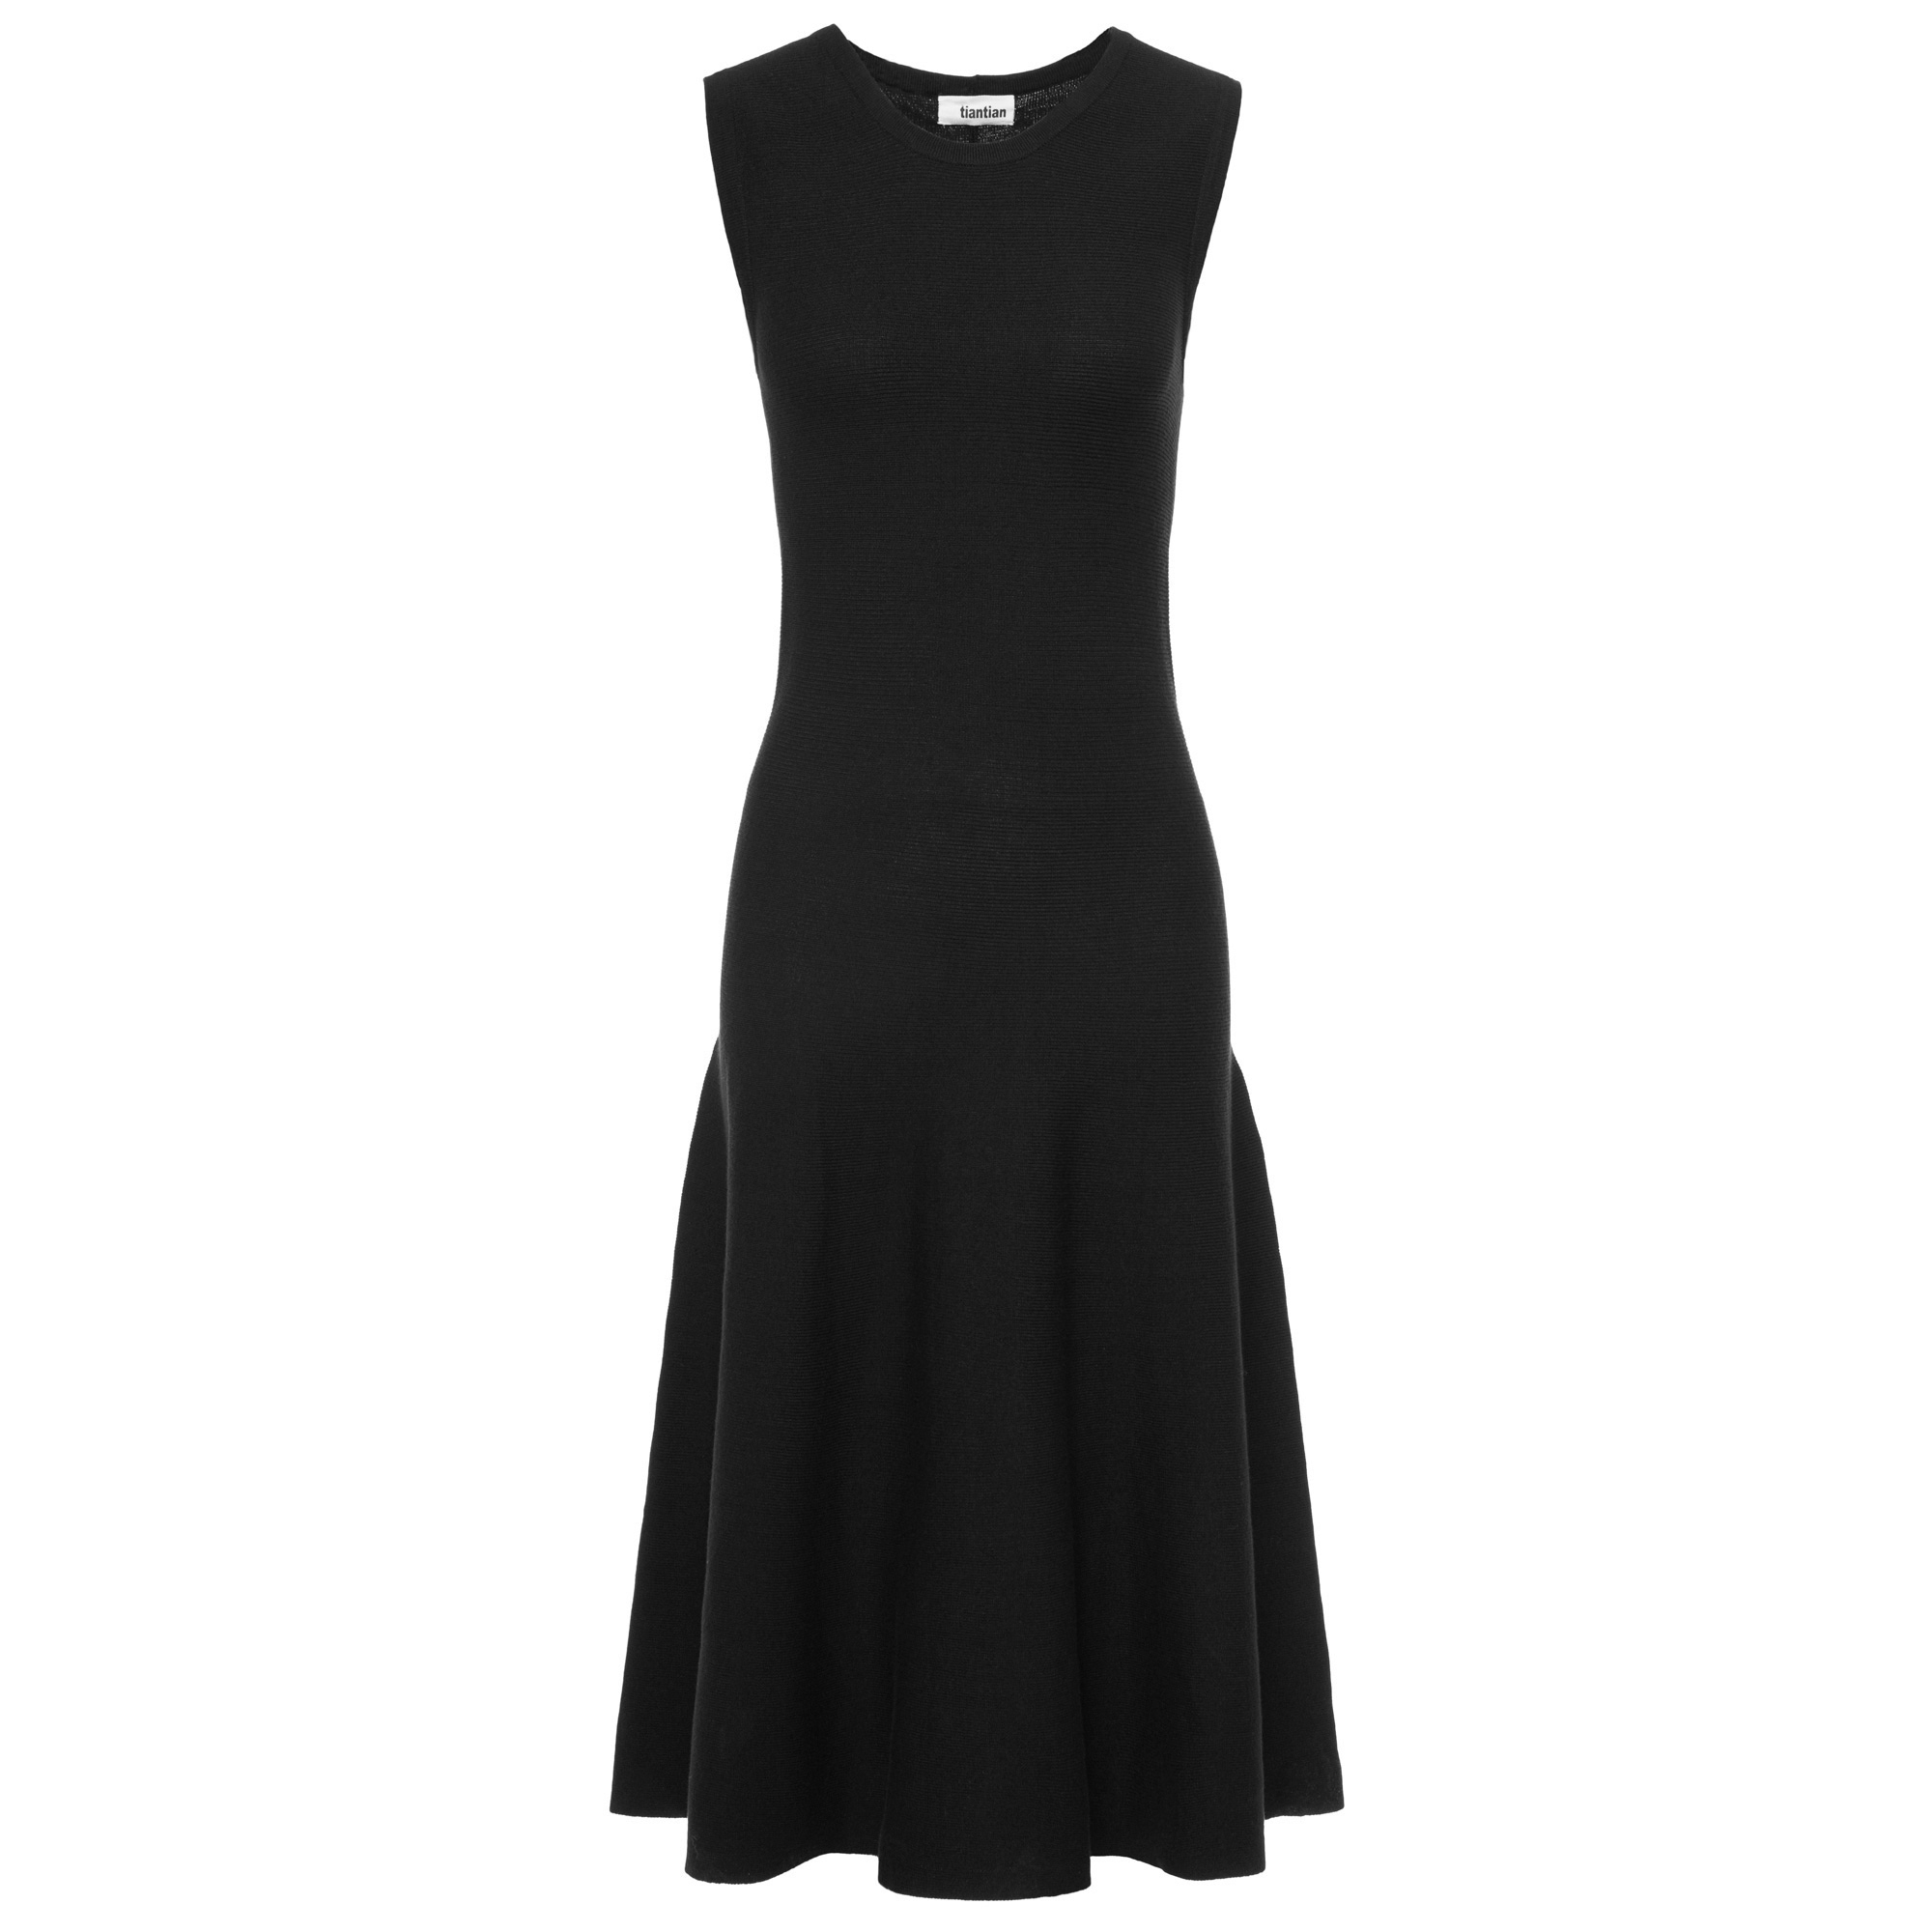 TIANTIAN Black Sleeveless Silk-Blend Midi Dress - WOMEN from Fashion ...